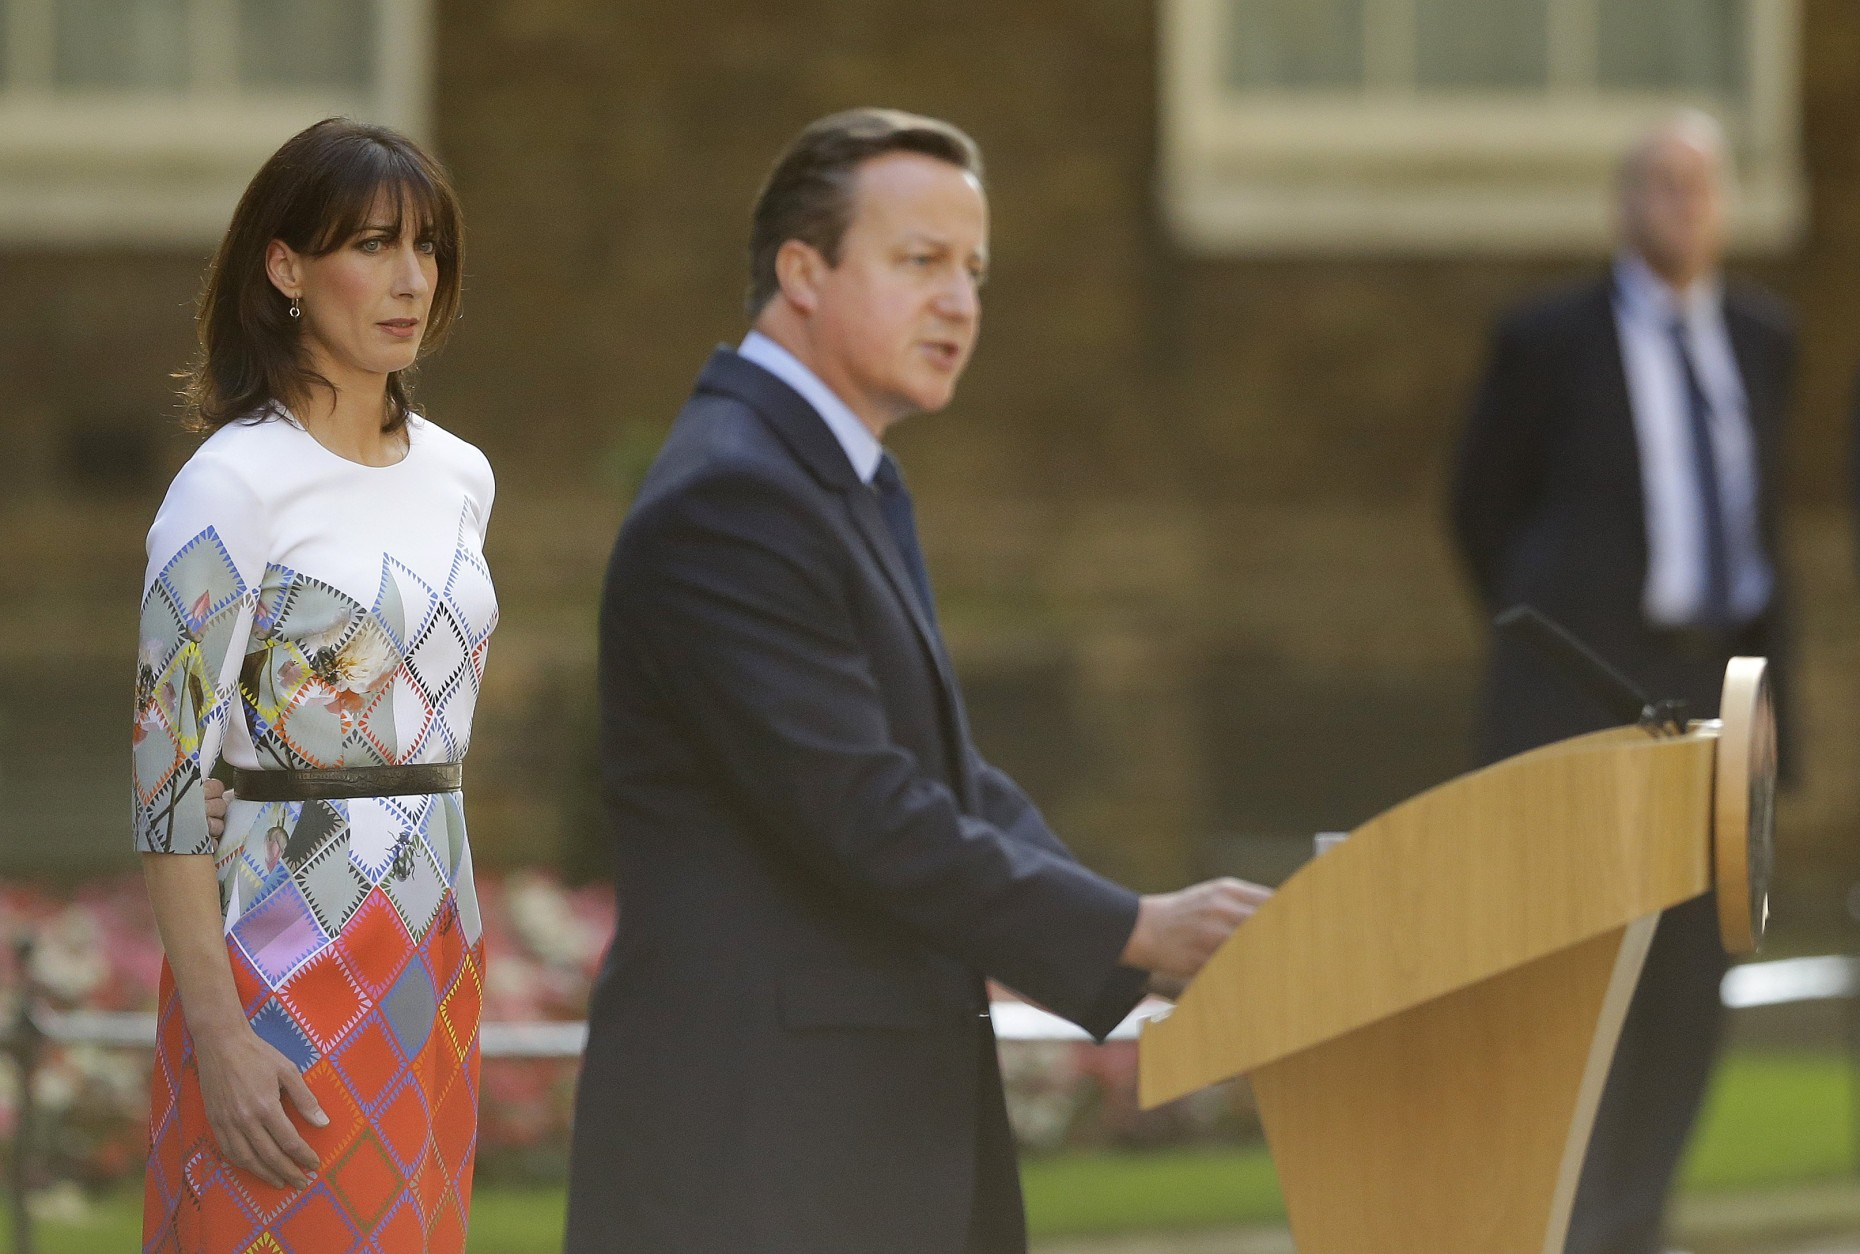 Britain's Prime Minister David Cameron speaks outside 10 Downing Street, London as his wife Samantha looks on Friday, June 24, 2016. Cameron says he will resign by the time of the party conference in the fall after  Britain voted to leave the European Union after a bitterly divisive referendum campaign, according to tallies of official results Friday. (AP Photo/Matt Dunham)